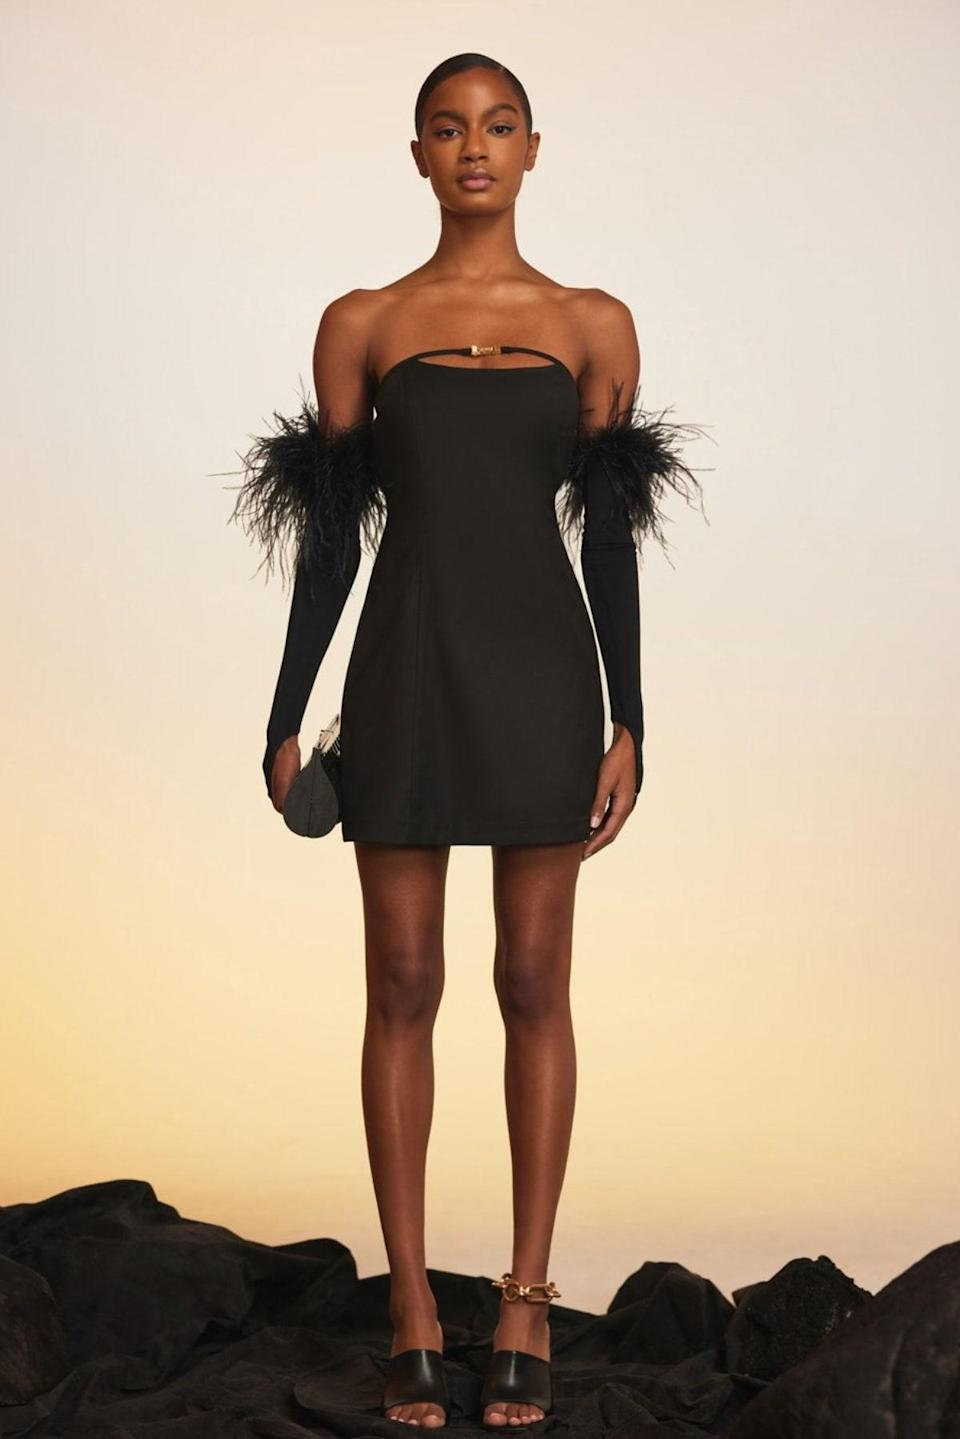 """Feather sleeves have entered the chat. We'll see ourselves out now. $428, Cult Gaia. <a href=""""https://cultgaia.com/products/jaslene-dress-black"""" rel=""""nofollow noopener"""" target=""""_blank"""" data-ylk=""""slk:Get it now!"""" class=""""link rapid-noclick-resp"""">Get it now!</a>"""